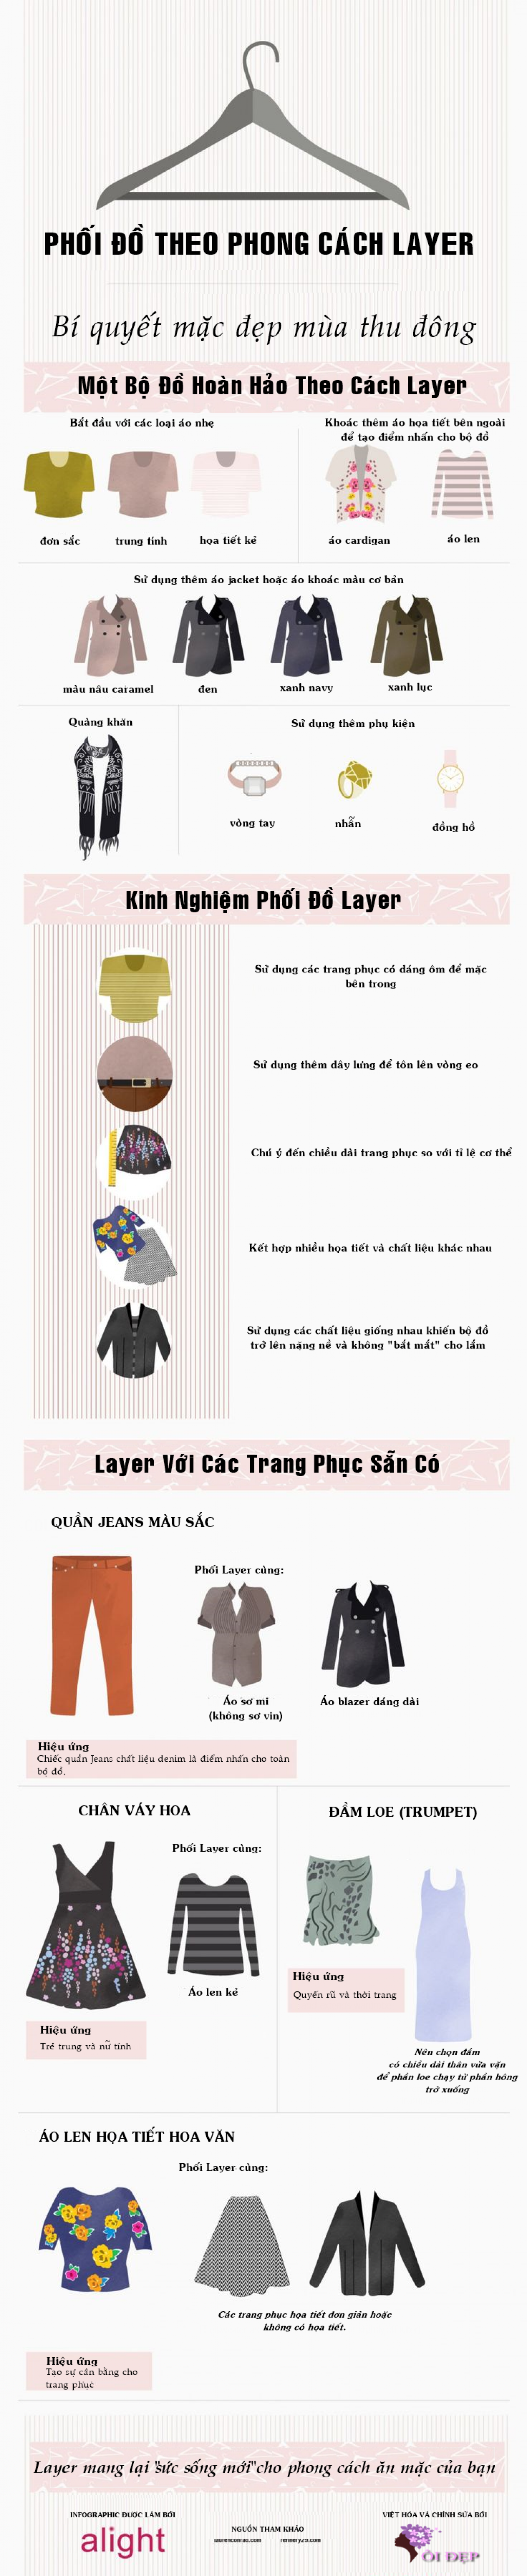 Cach phoi do layer tuyet dep ngay thu dong Infographic